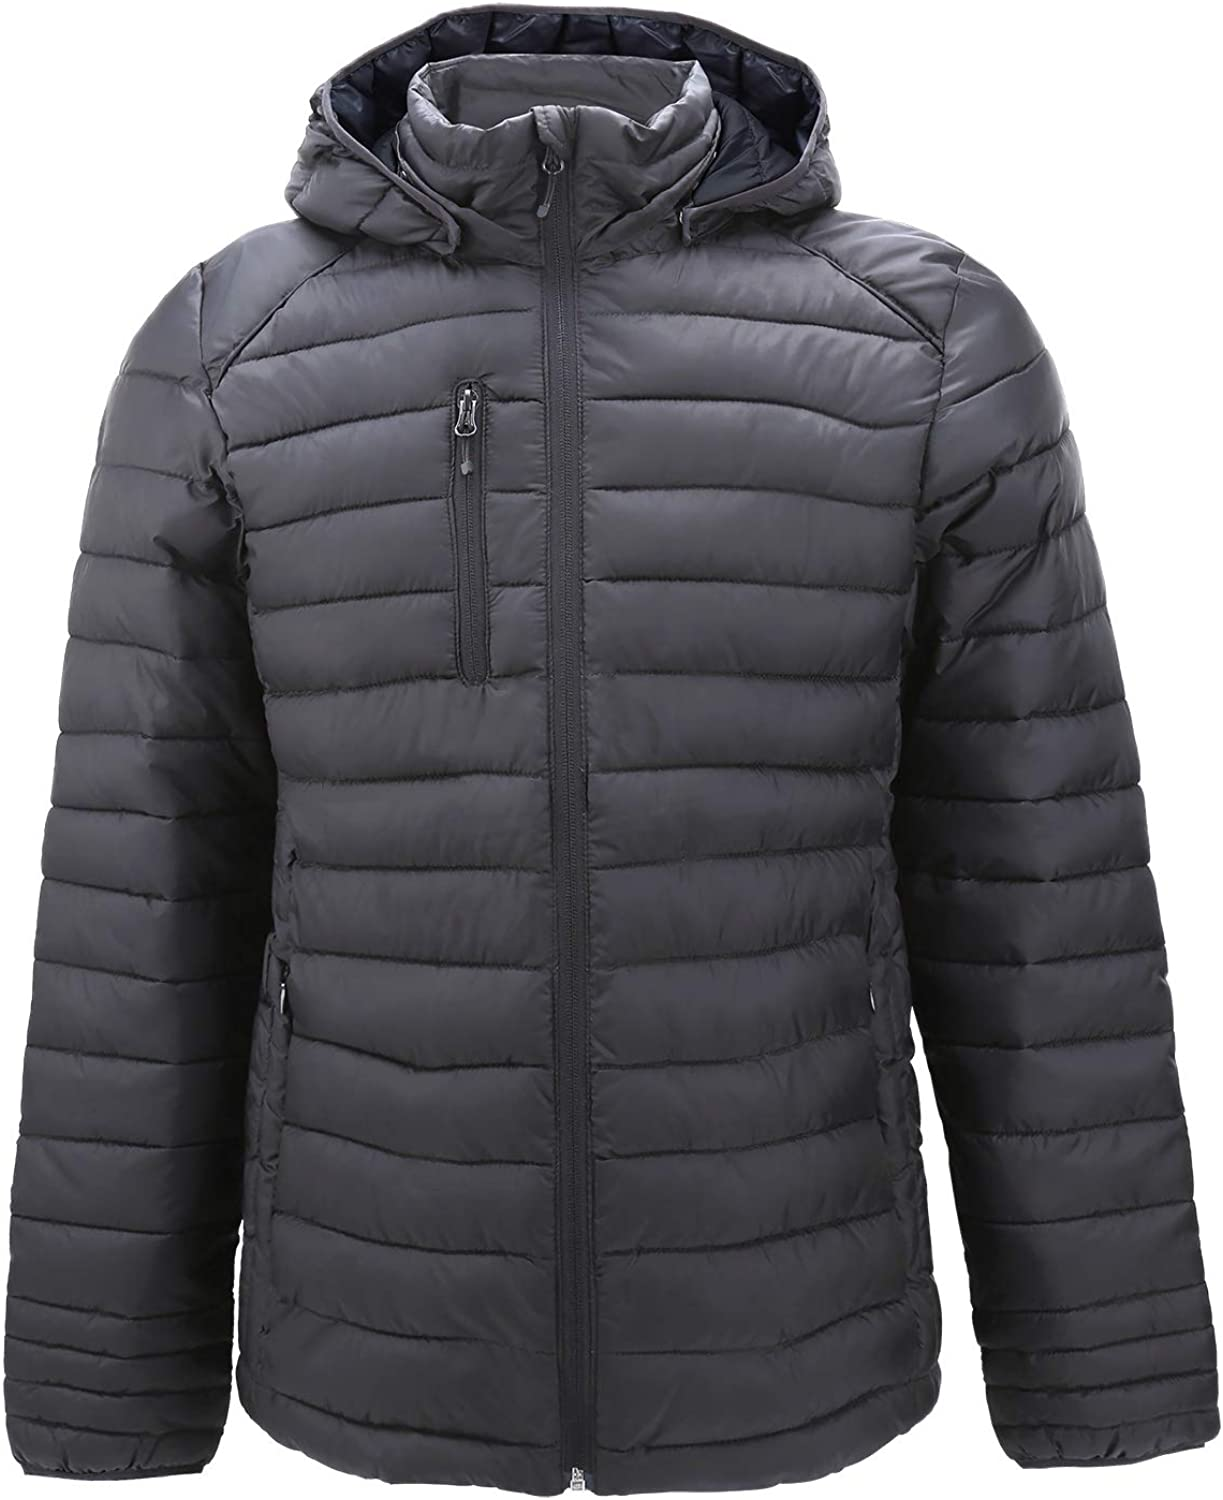 Max 60% OFF Down Alternative Jacket for Women P Bargain Lightweight Quilted Packable